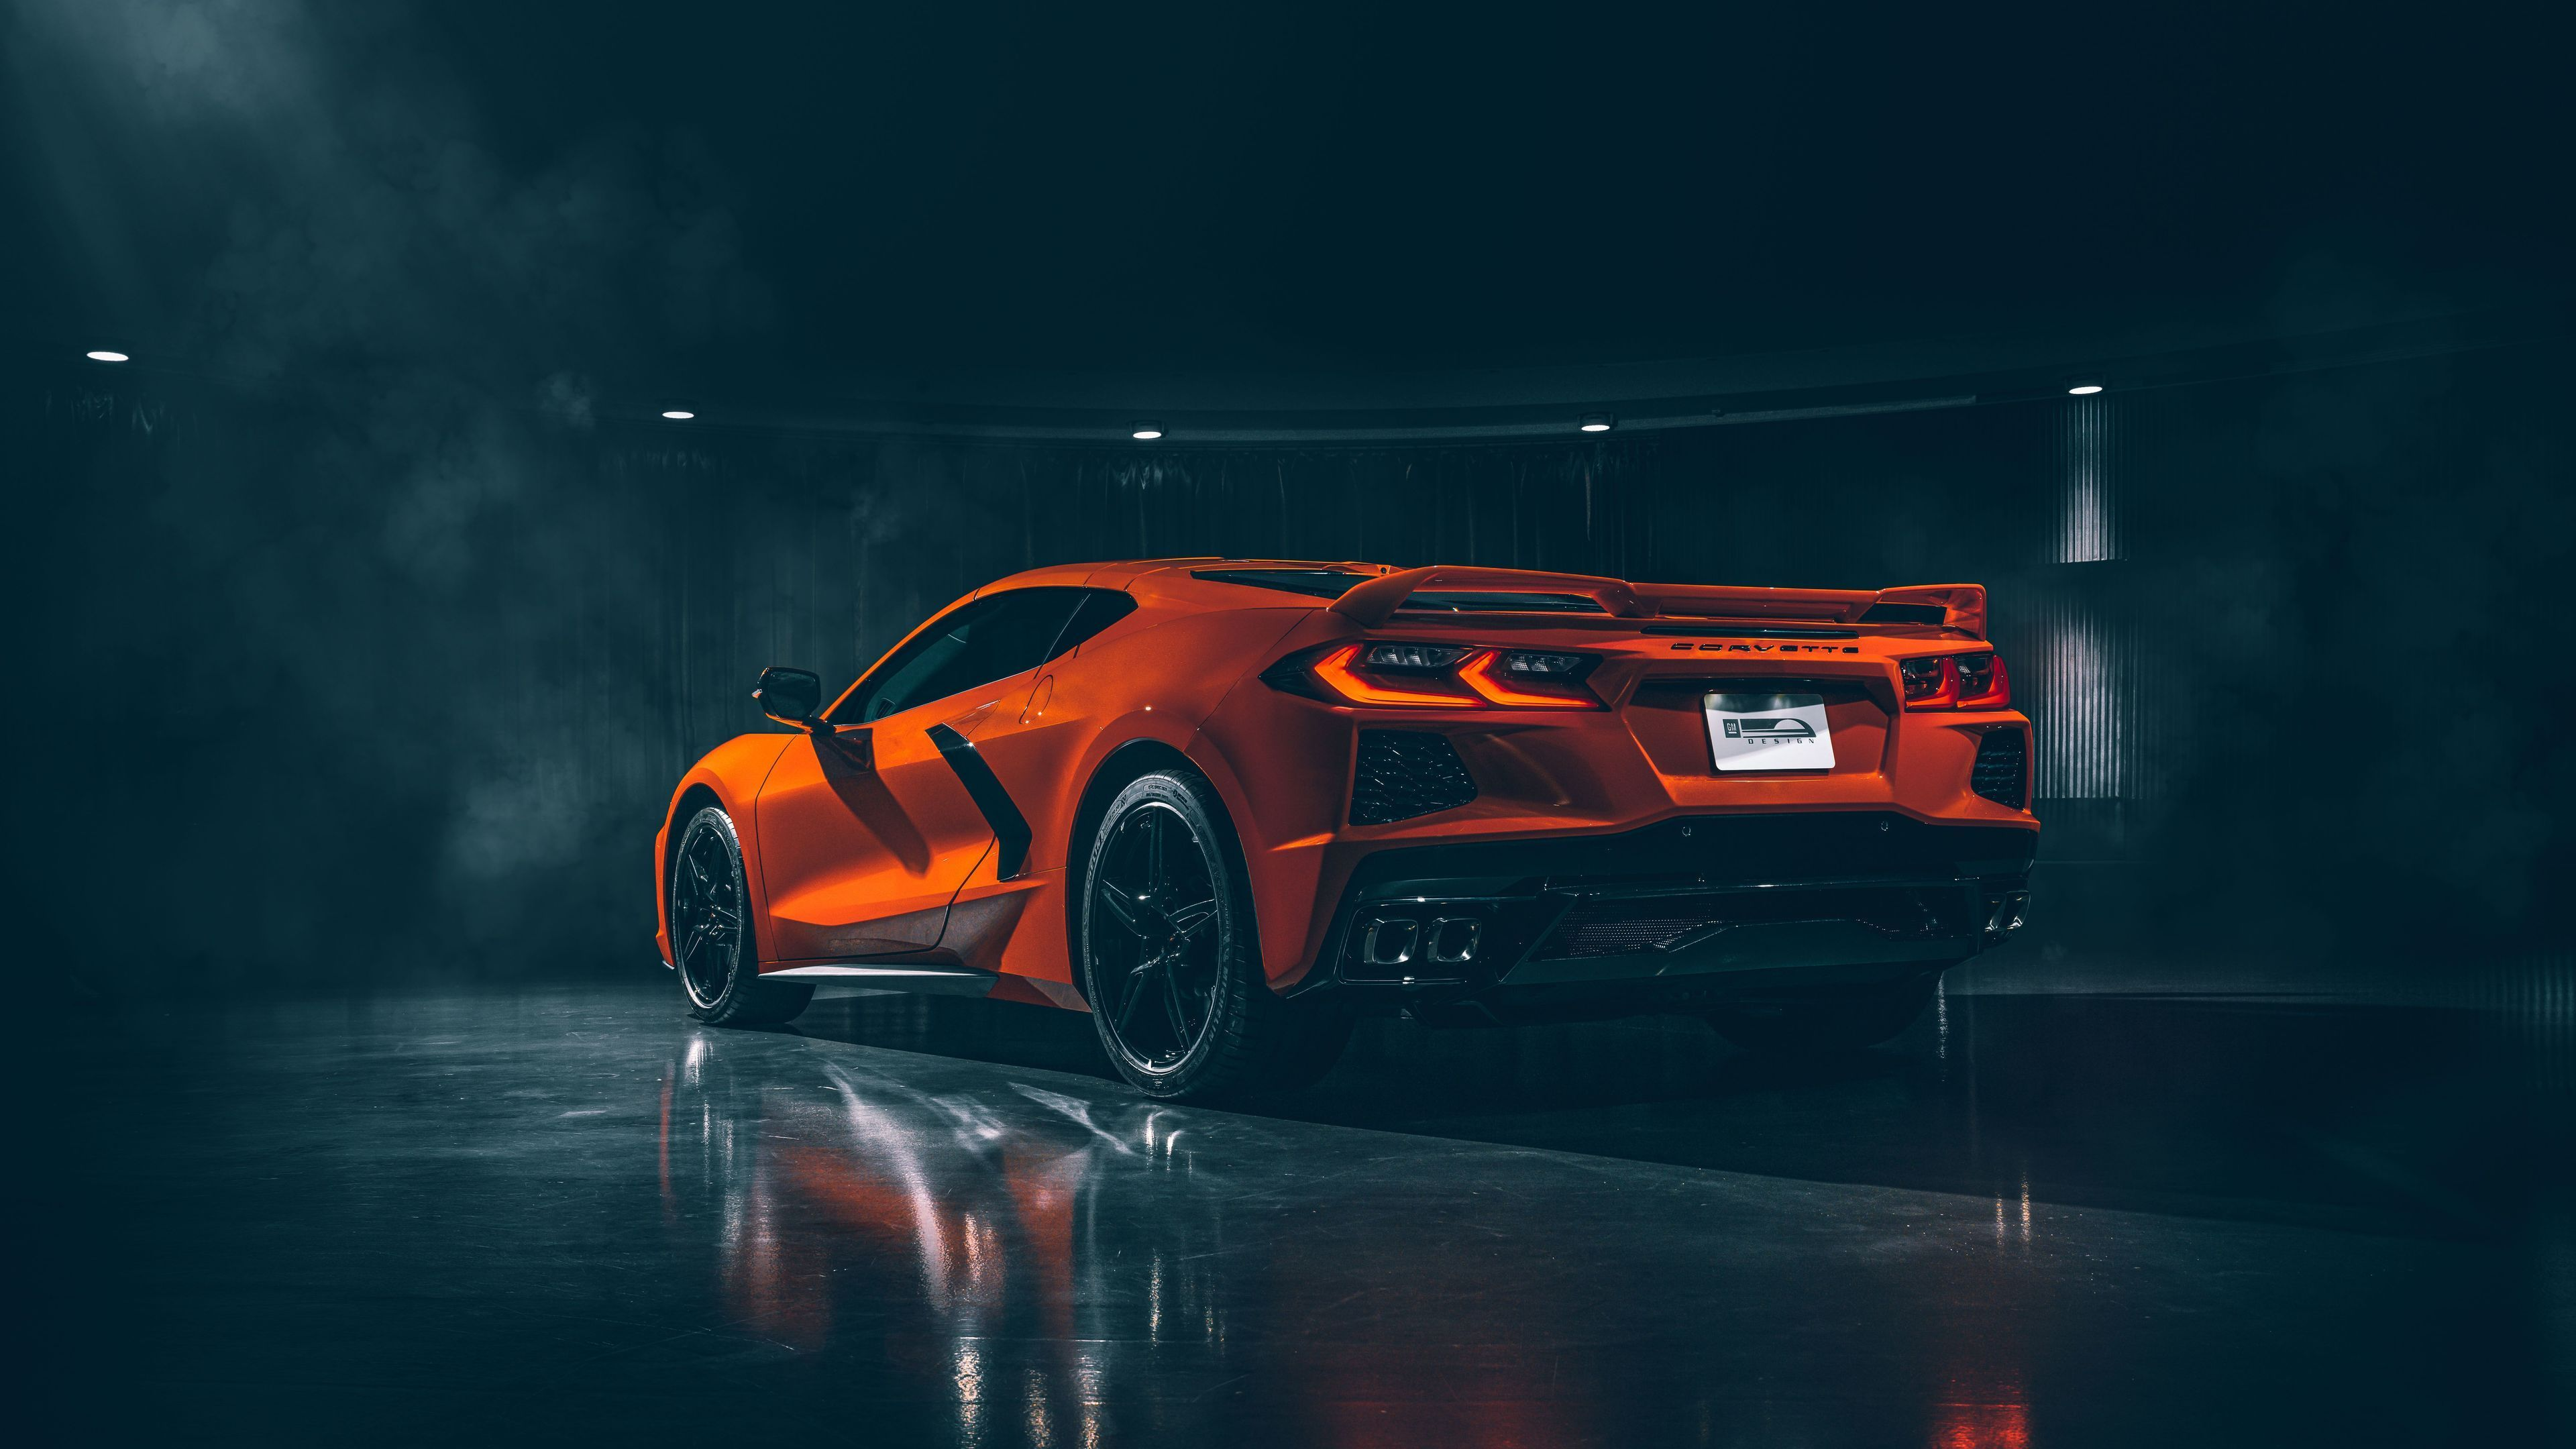 2020 Chevrolet Corvette Stingray C8 Rear Hd Wallpapers Corvette Wallpapers Chevrolet Wallpapers Chevrolet Corvette Stingray C8 Wallpapers Cars Wallpapers 8